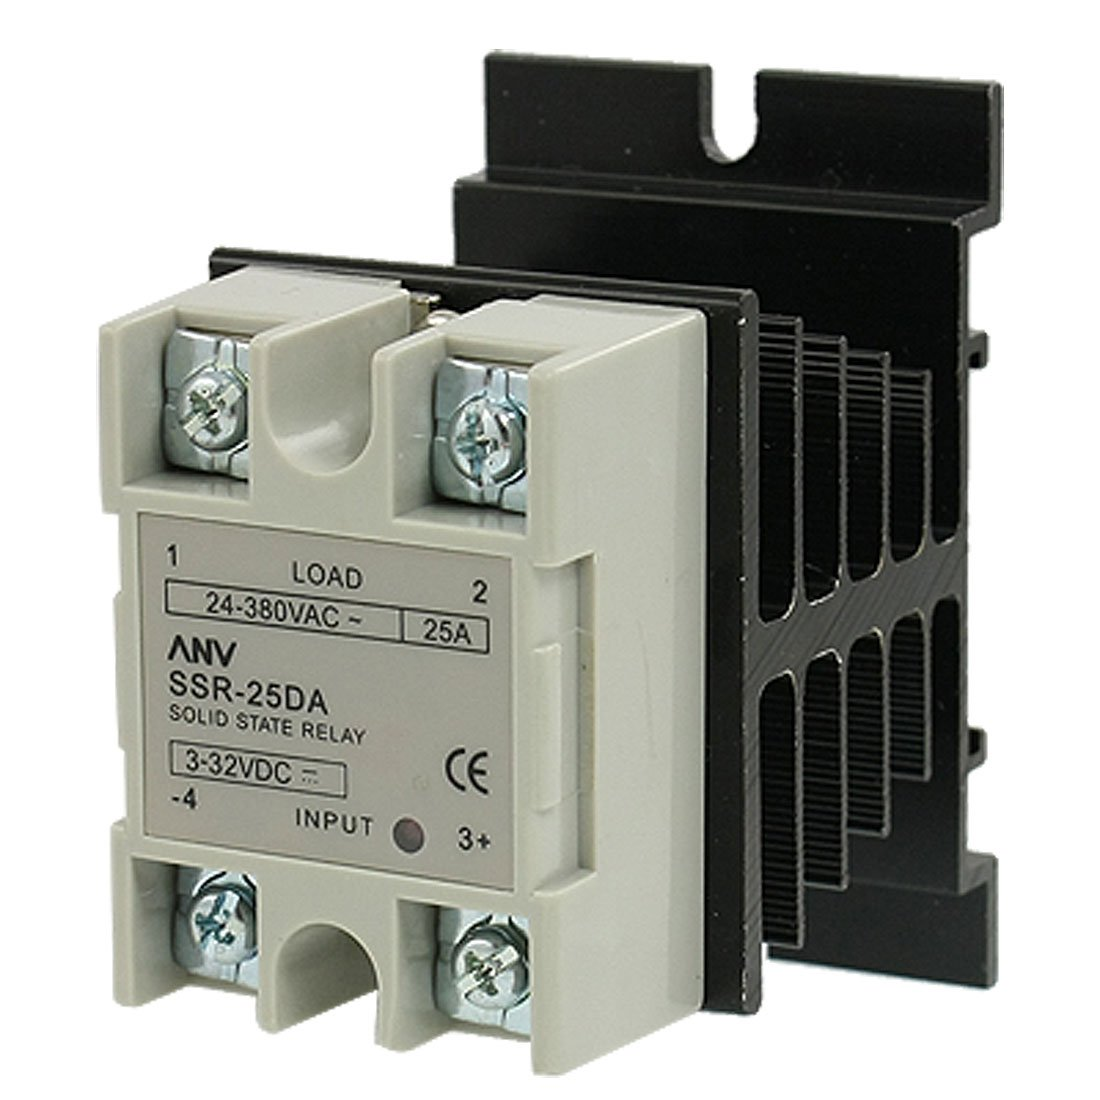 Uxcell Ssr 25 Da Solid State Relay And Heat Sink Amp 3 Vdc Working 32vdc 24 Vac 380 Industrial Scientific